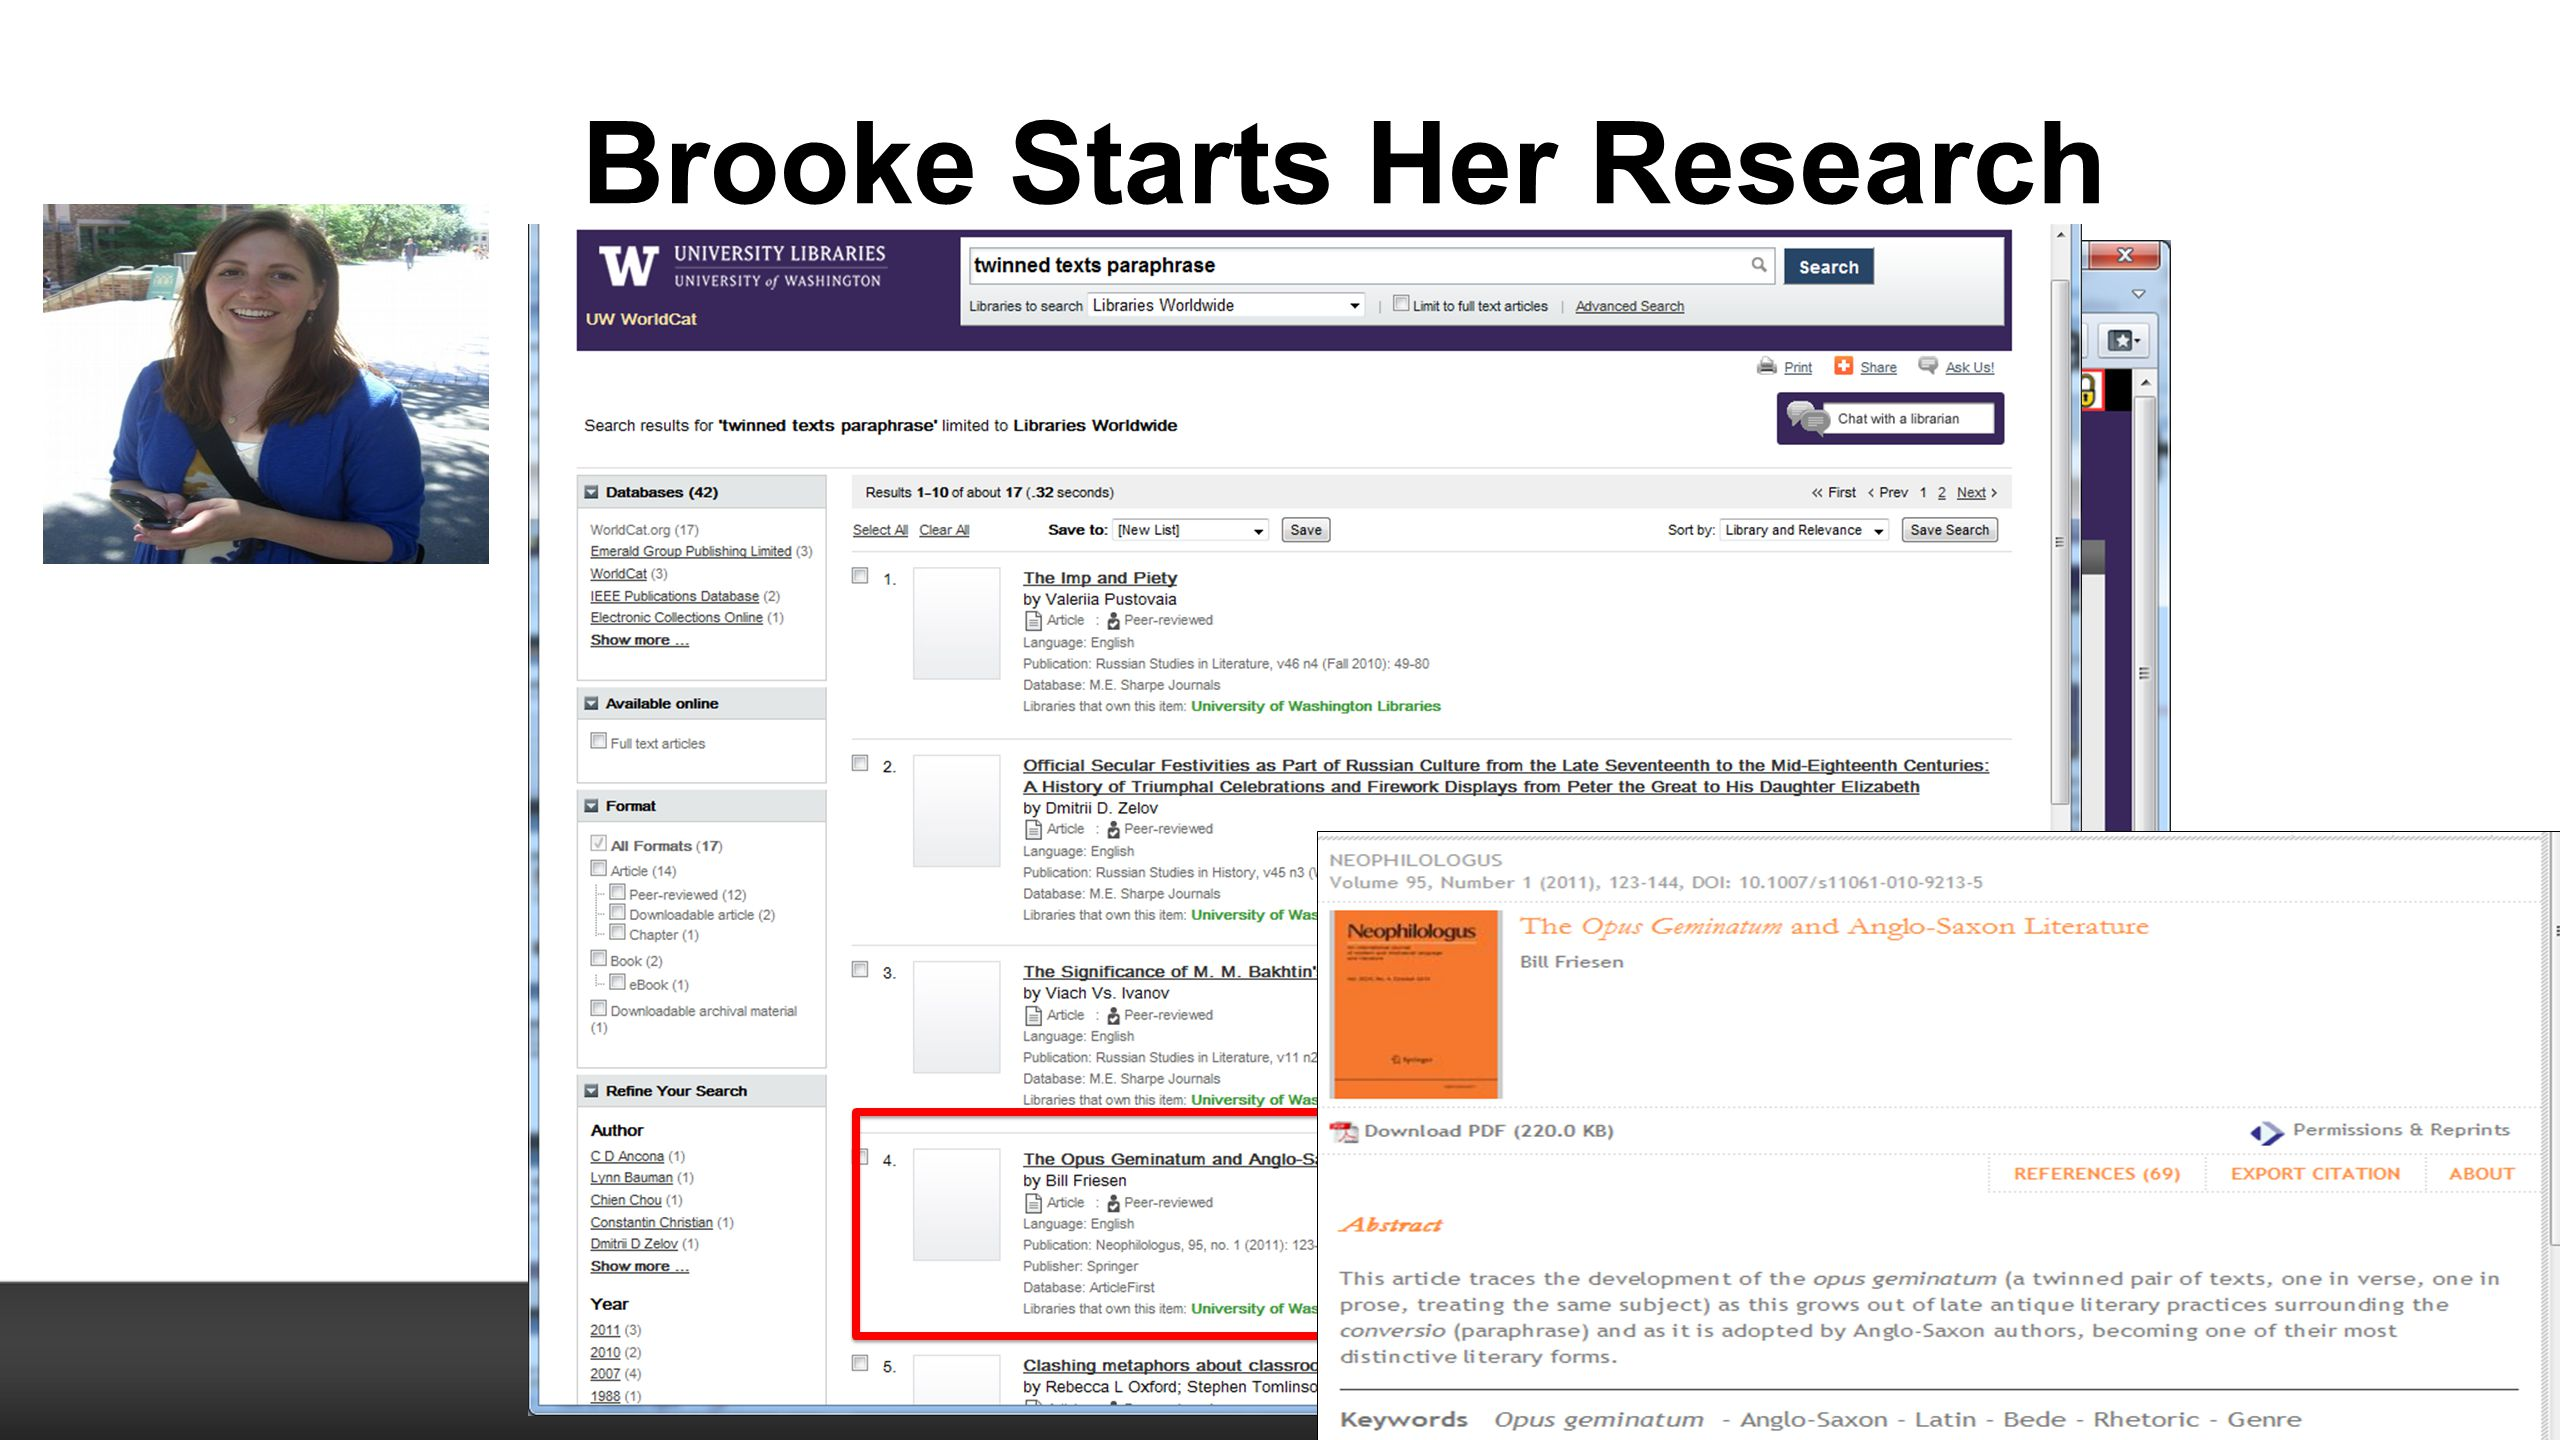 Brooke Starts Her Research